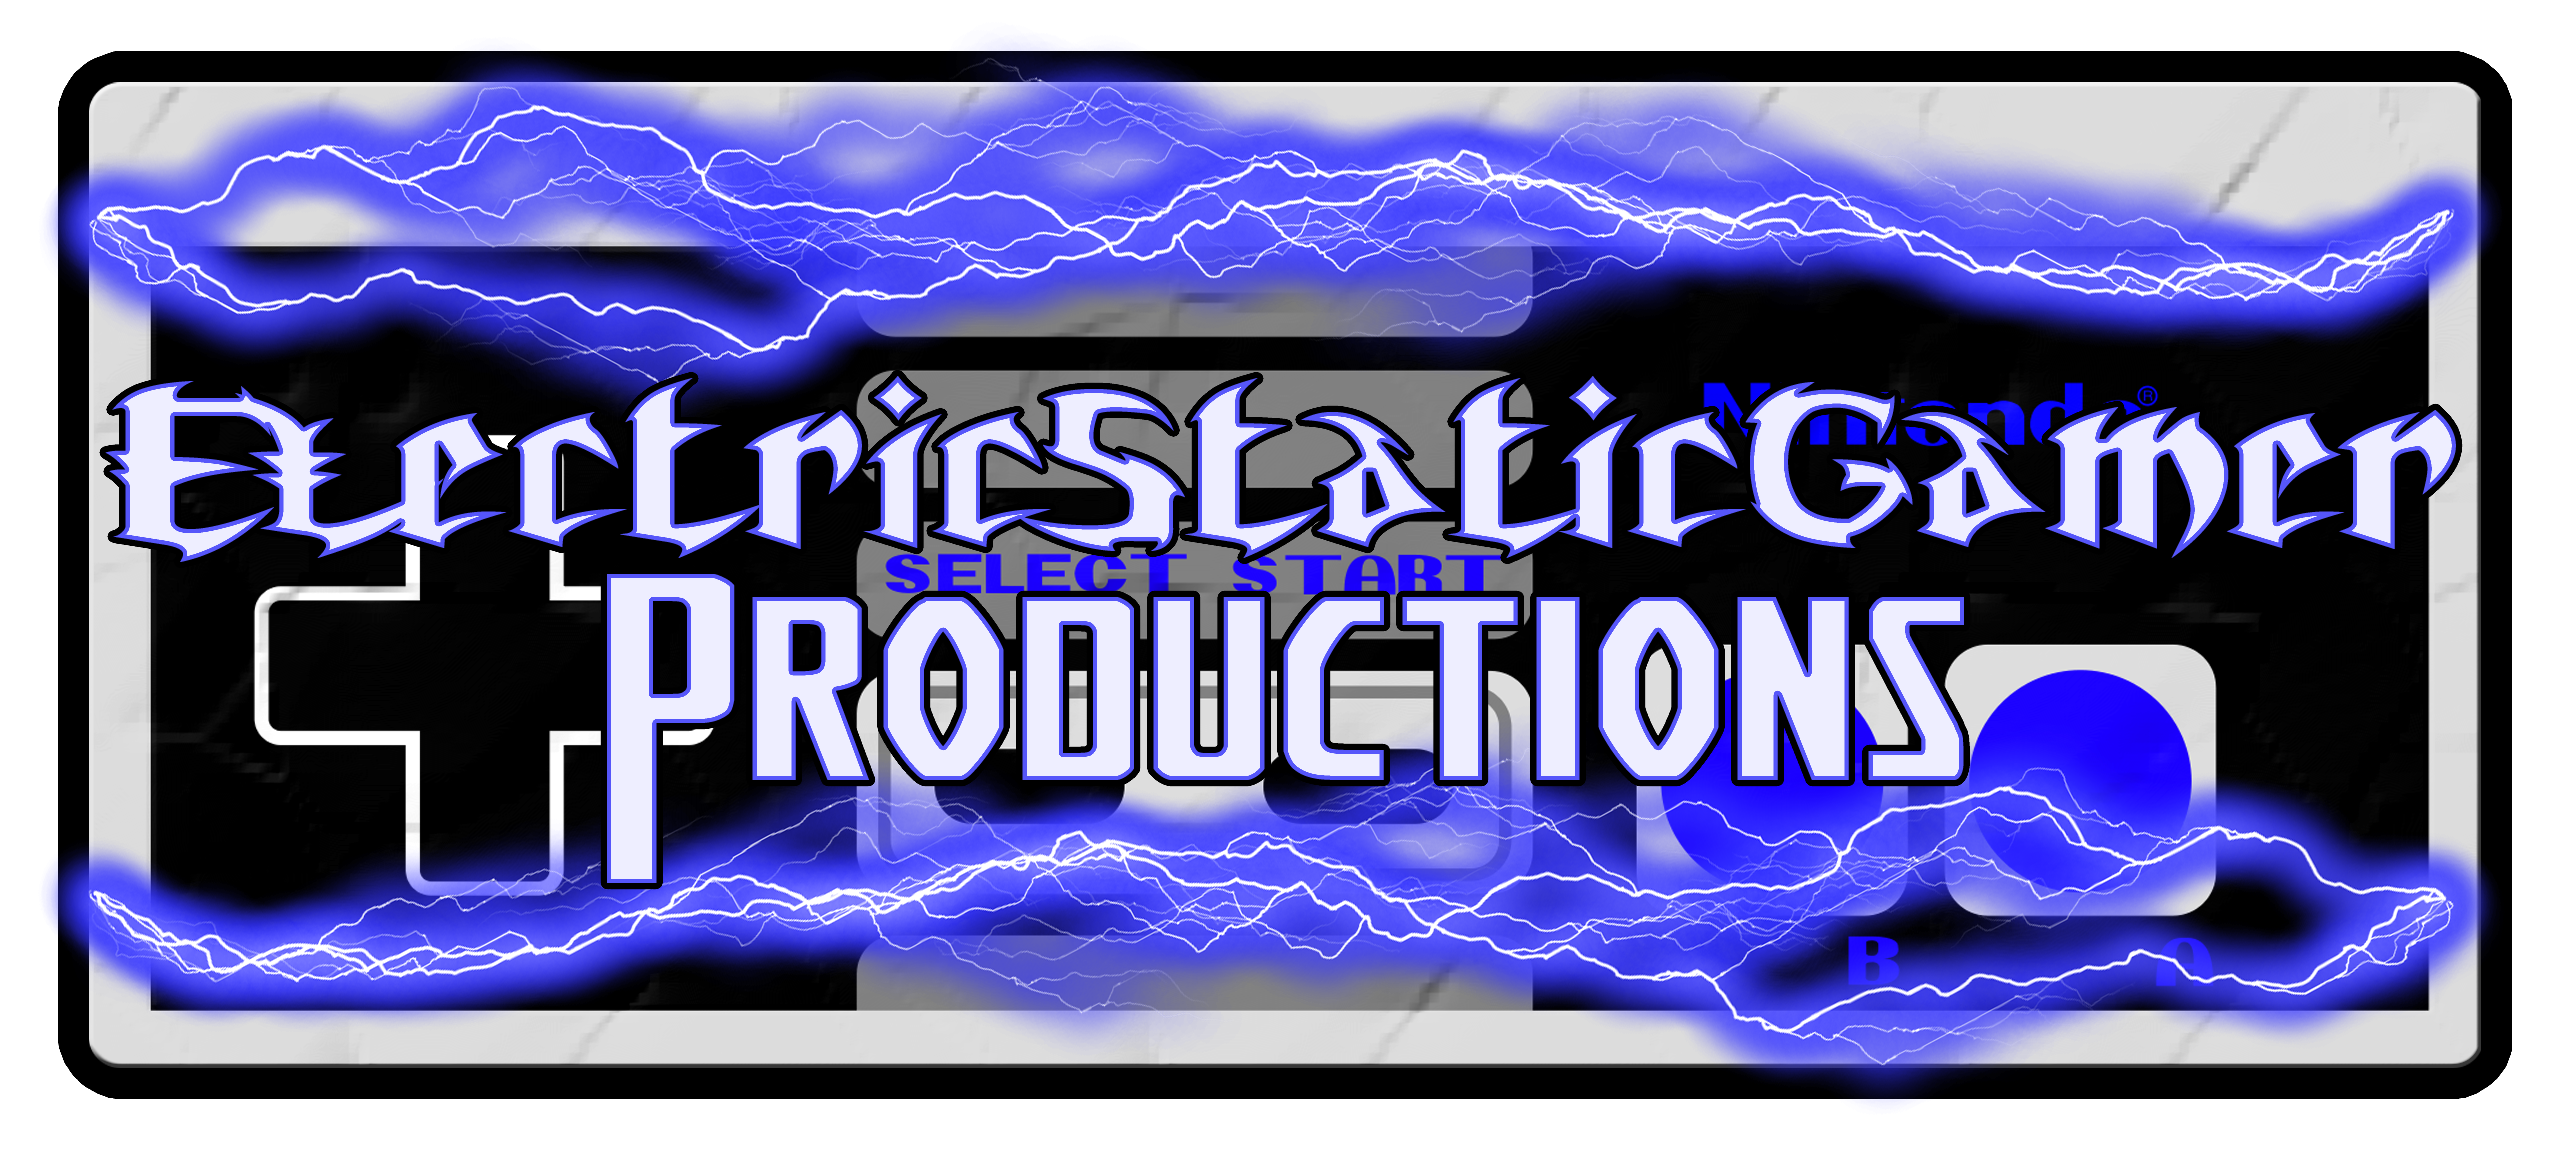 esg productions logo by heiseigoji91 on deviantart